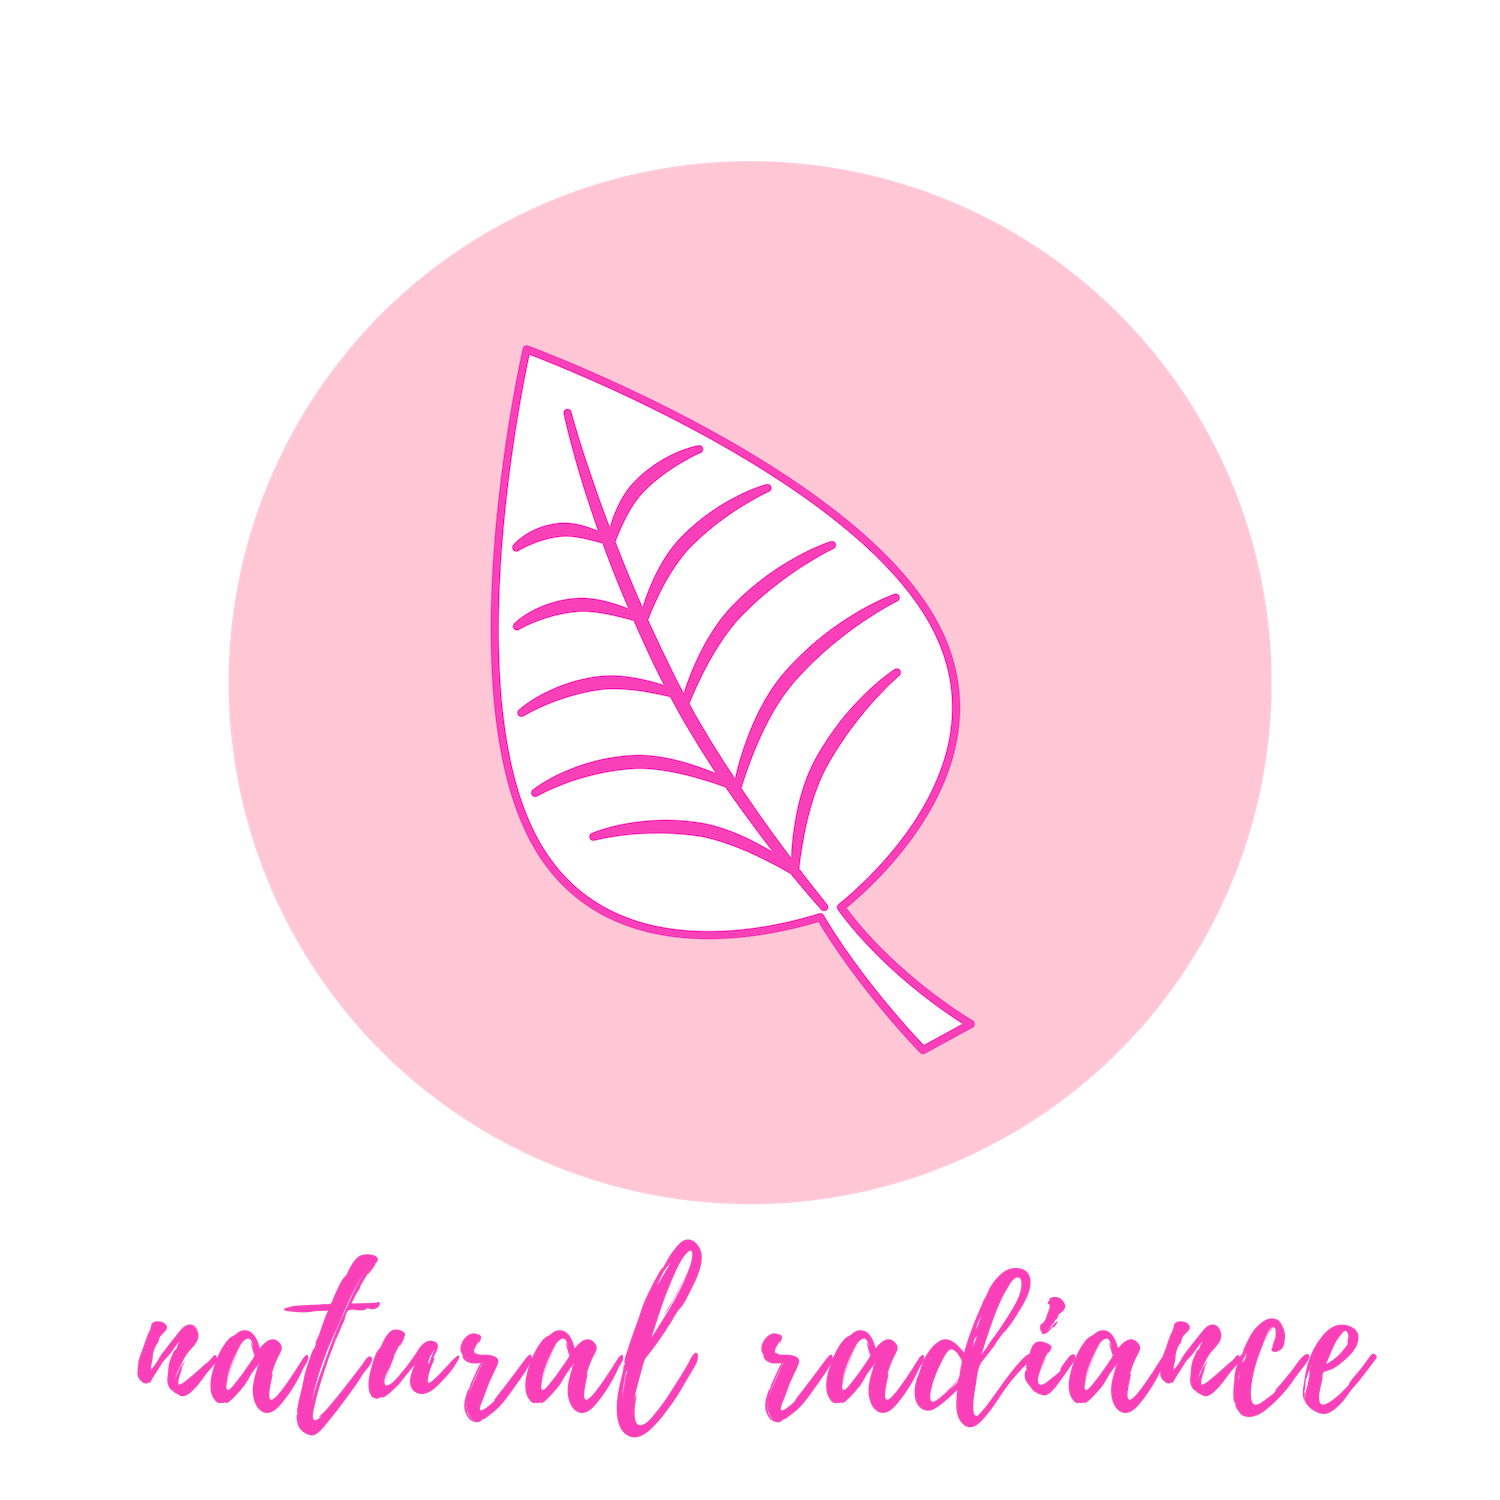 - We only use products that are naturally derived, vegan, and cruelty-free, and FREE of fragrance, parabens, allergens, sulfates.